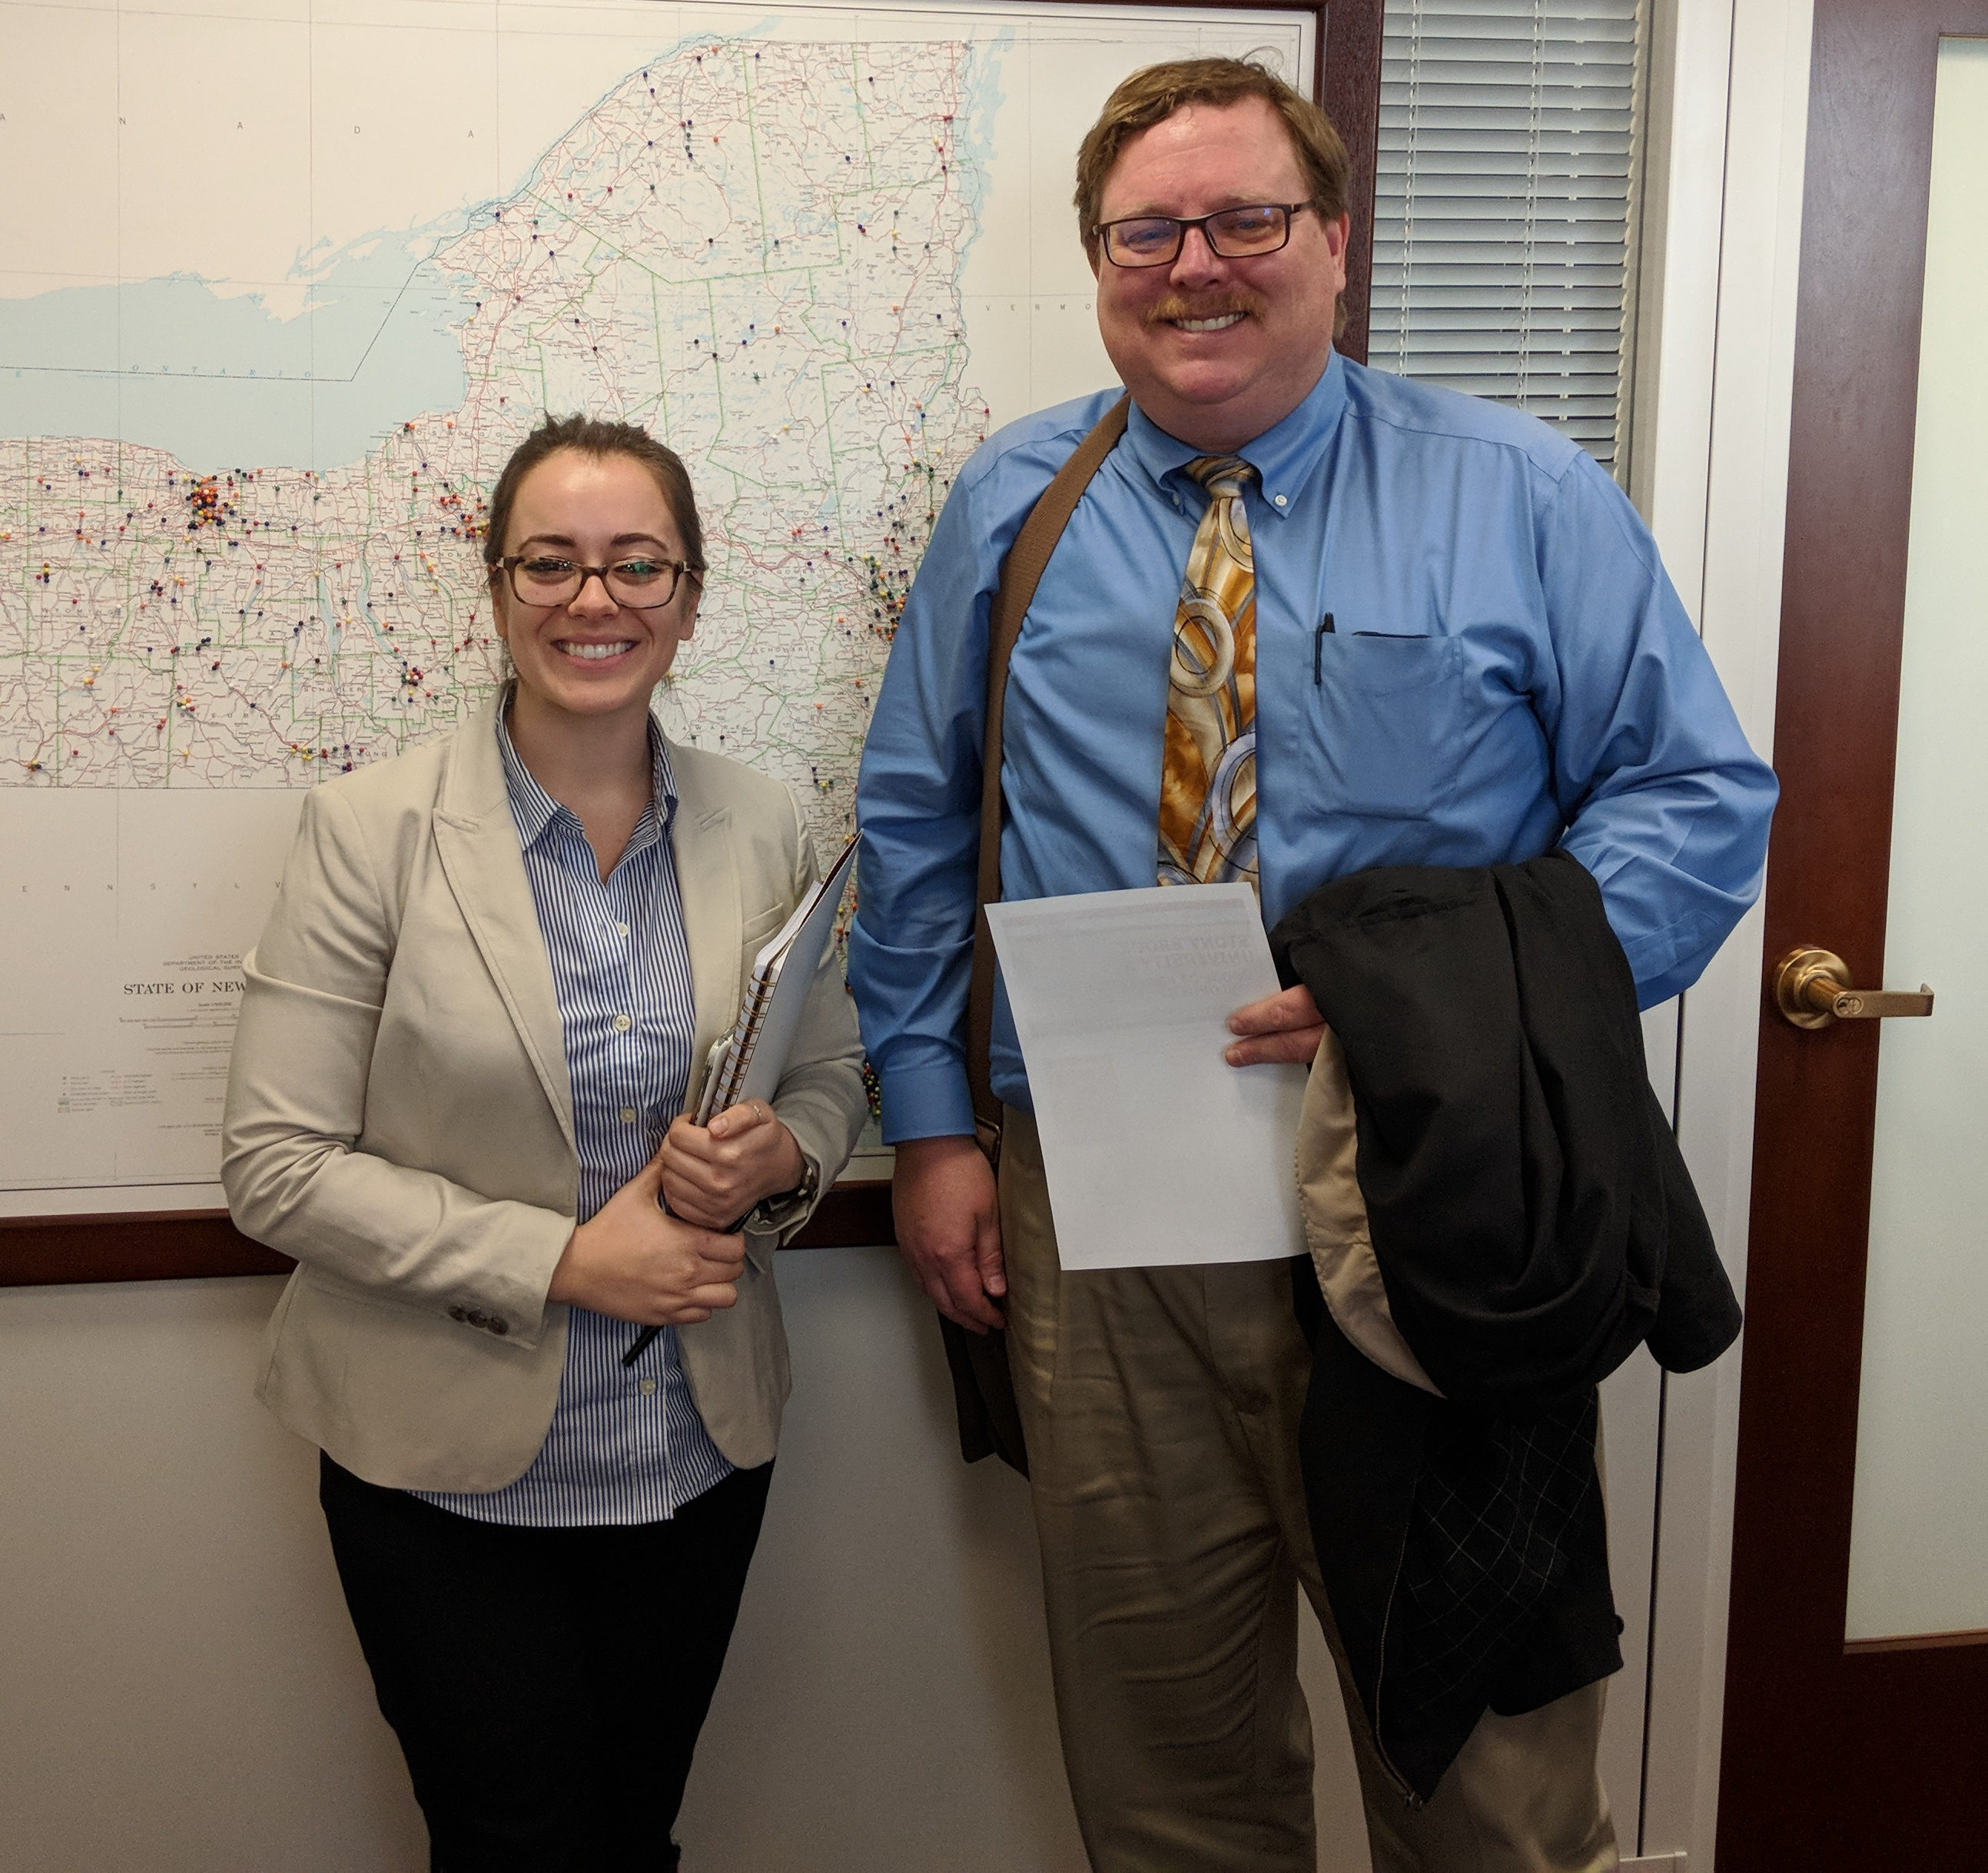 Ken Lindblom and Morgan Brand, Higher Education Policy Staffer for Minority Leader Chuck Schumer, at Senator Schumer's office.